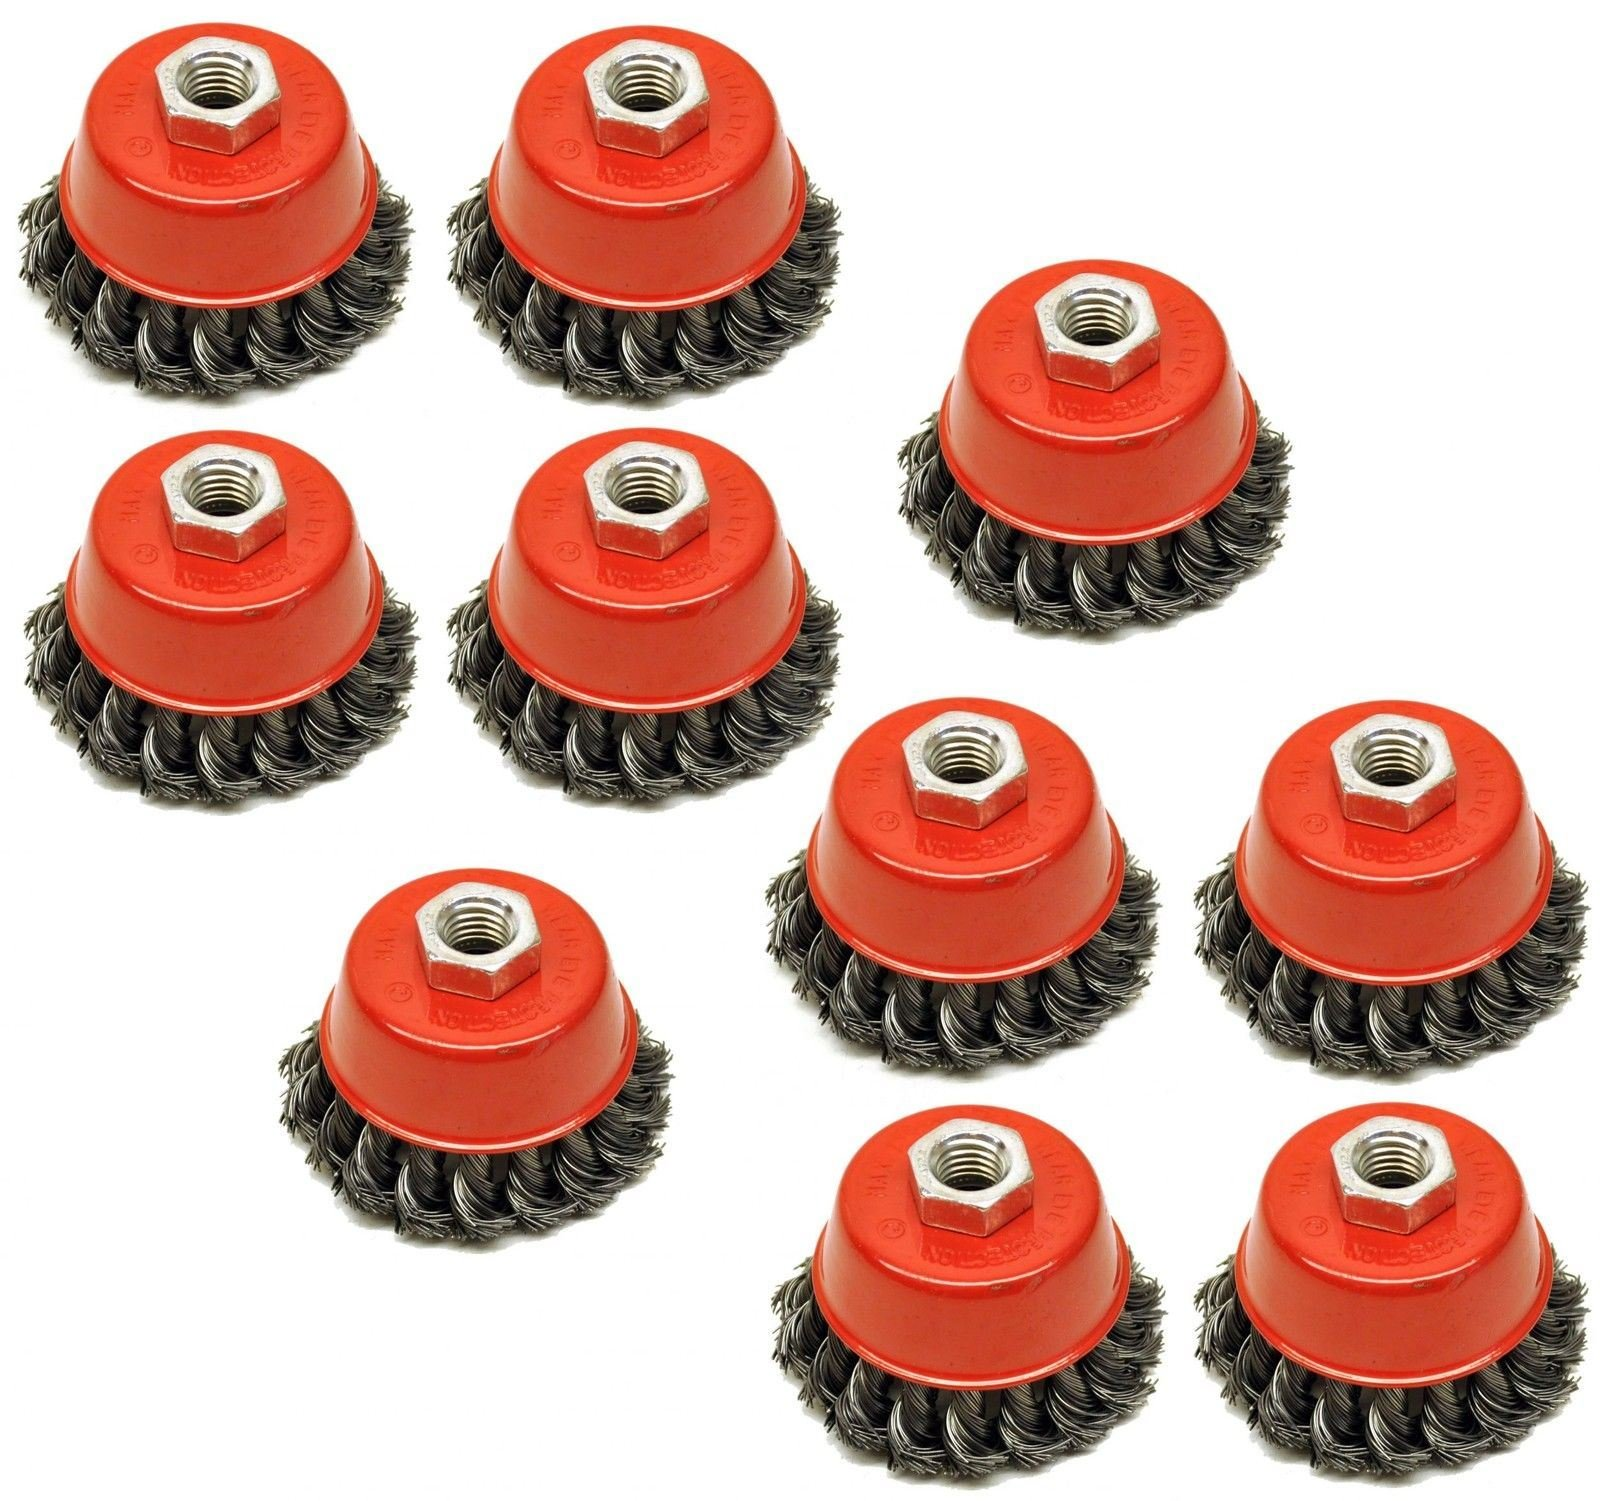 Twist Knot Wire Wheel Cup Brush 3'' for 4-1/2'' Angle Grinder 10 Pack AU026